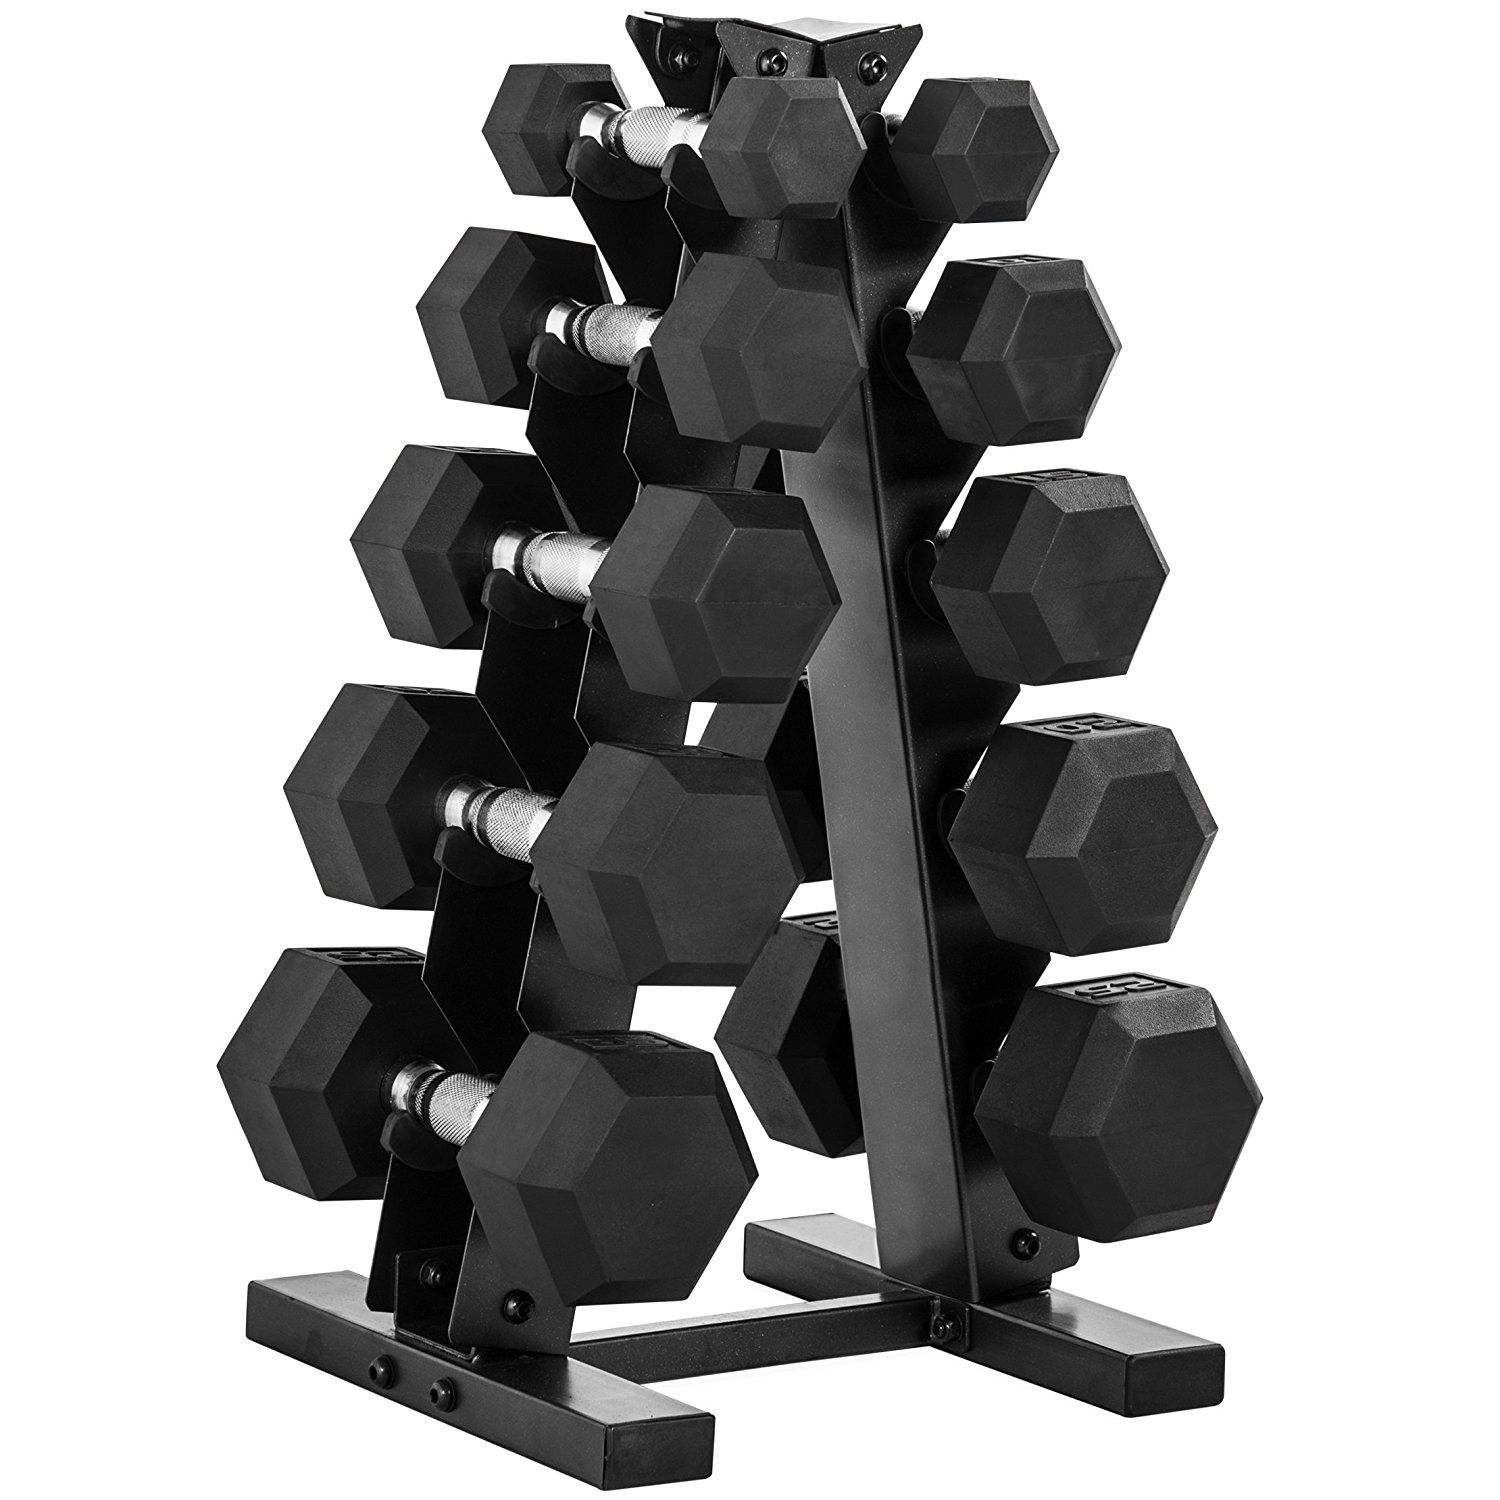 Here Are All The Best Amazon Prime Day Home Deals Dumbbell Set With Rack Dumbbell Weight Set Hex Dumbbells